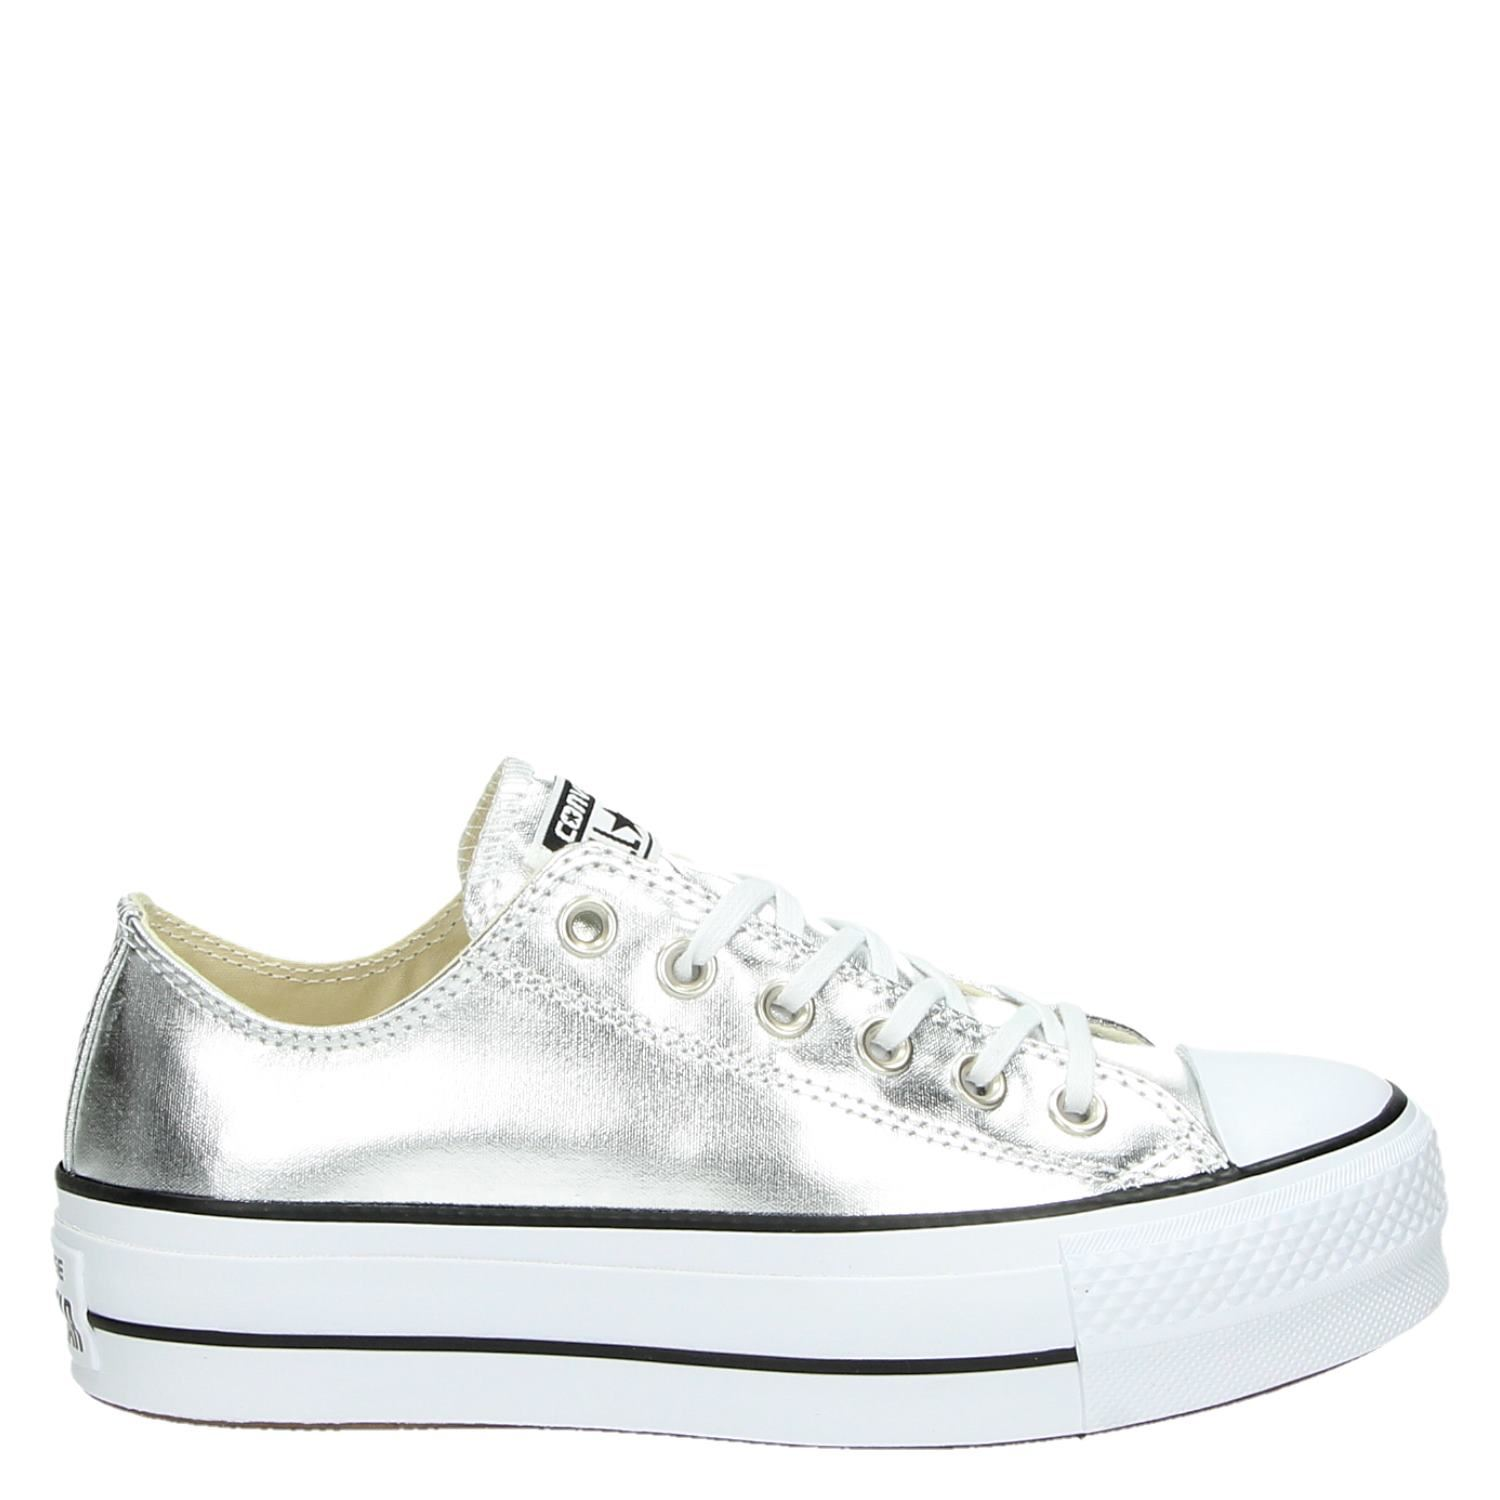 5f53fae94ca Converse Chuck Taylor All Star Lift dames platform sneakers zilver